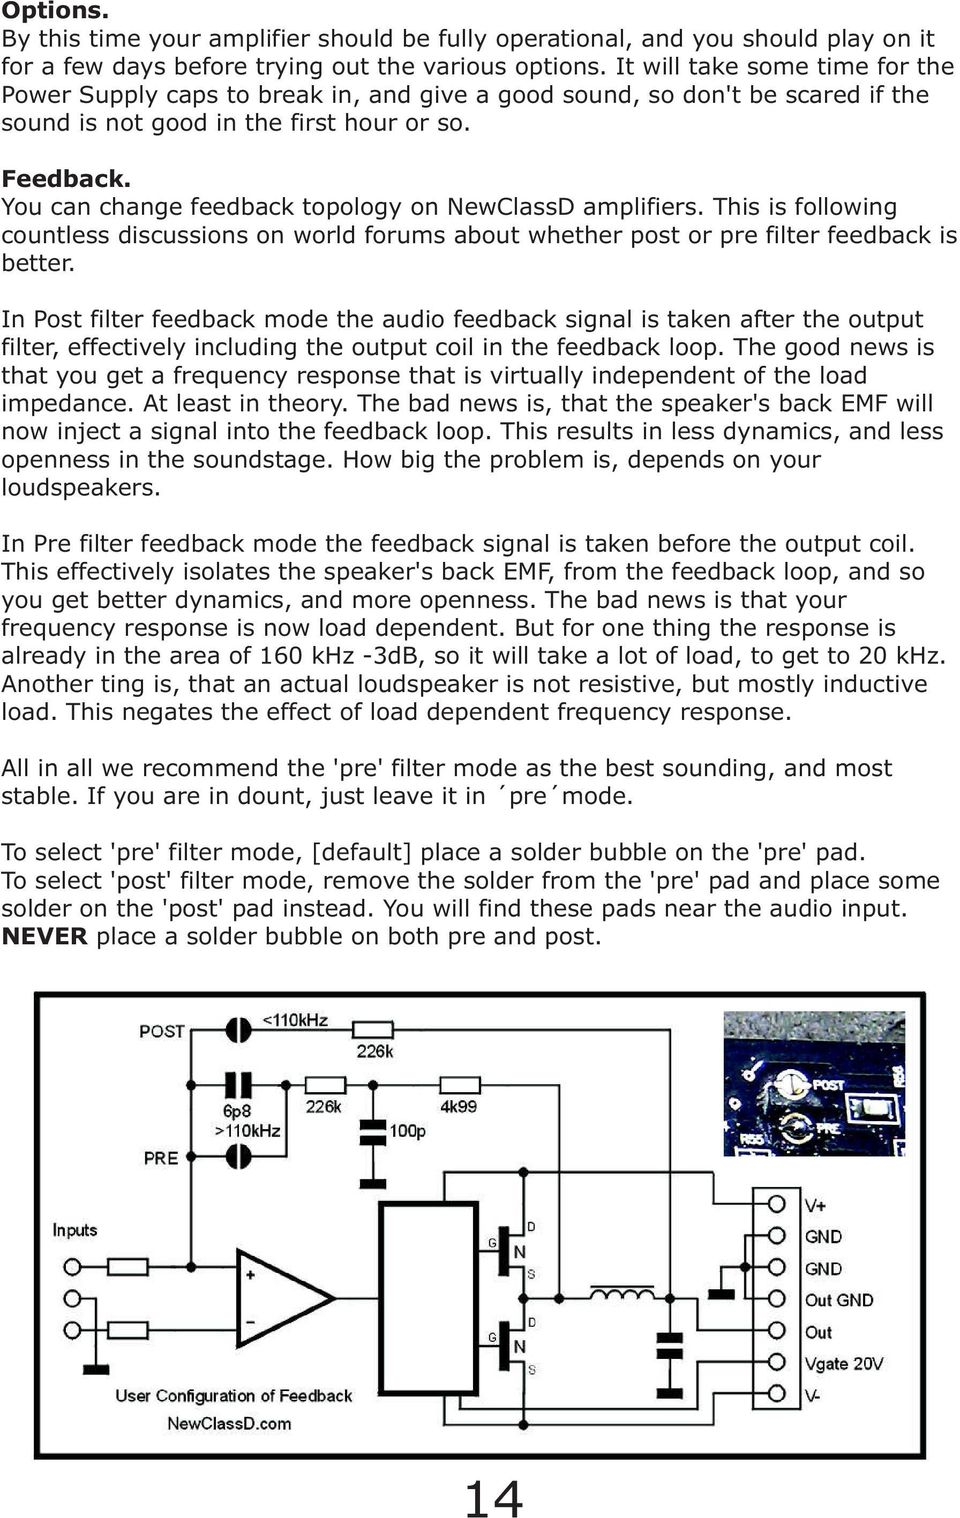 Newclassd Cookbook Ver Ncdx Advanced Class D Amplifier For Diy Tda7294 Audio Circuits P Marian You Can Change Feedback Topology On Amplifiers This Is Following Countless Discussions World